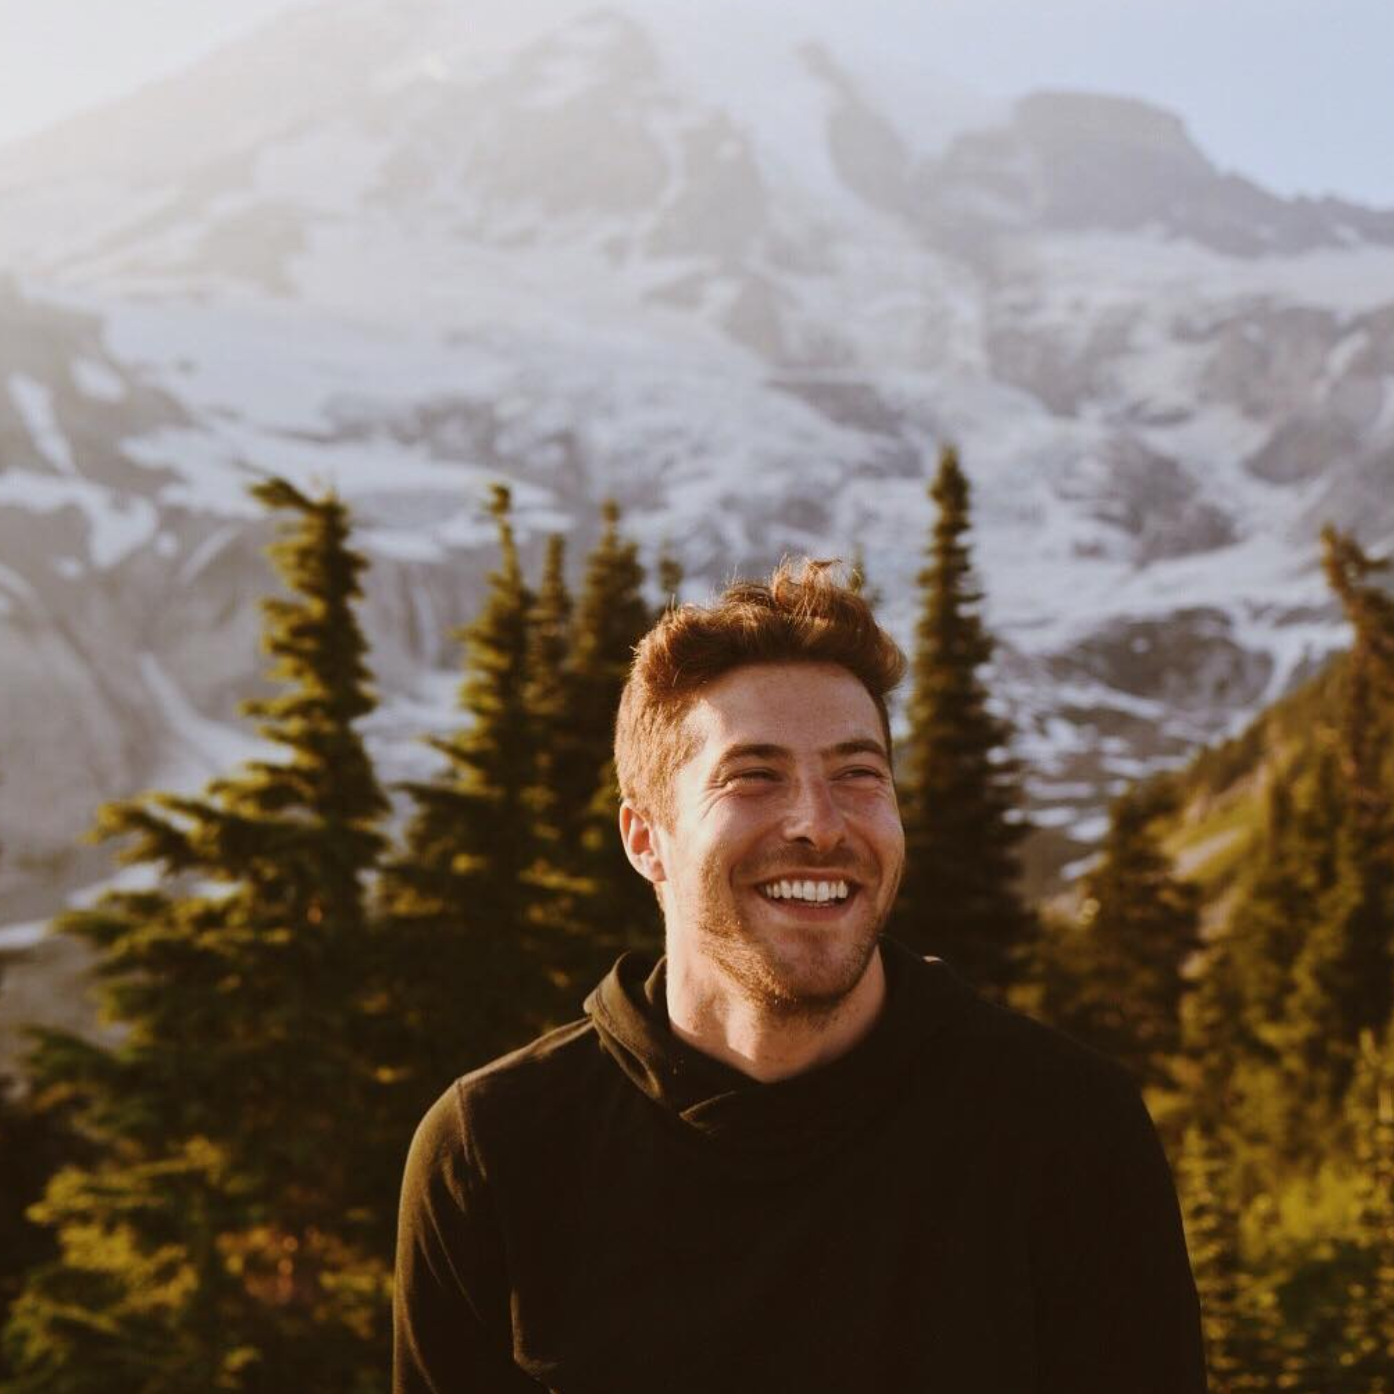 Braden Timm - Braden Timm is a Seattle native with a day job in tech and a passion for landscape photography. Armed with a Nikon D750, you can usually find him hiking in the Pacific Northwest on weekends or trekking in a National Park near you.Instagram